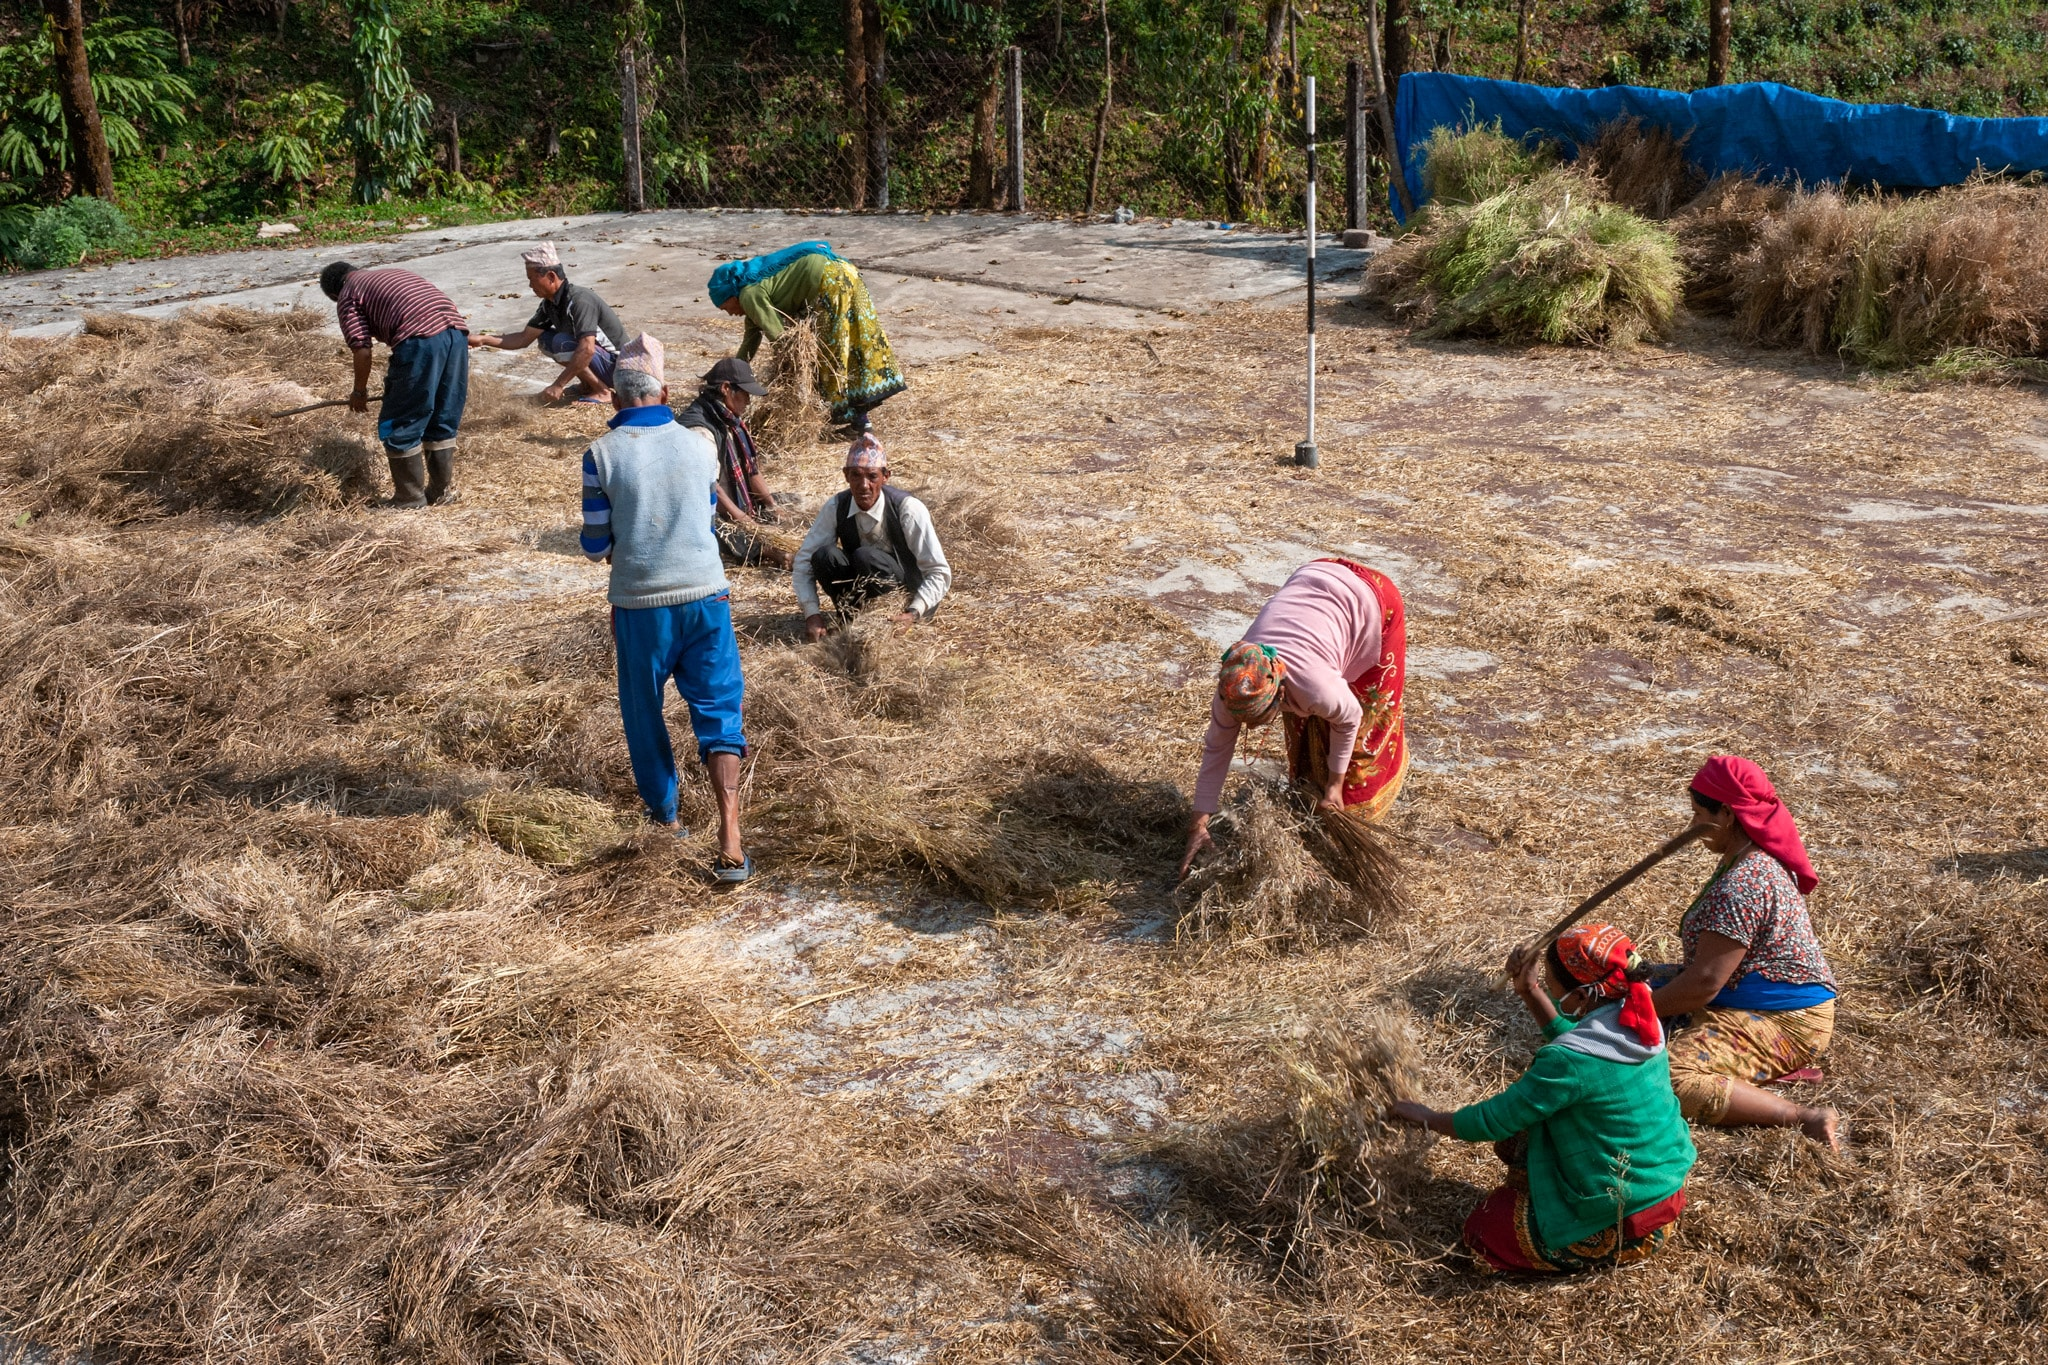 Nepalese farmers hand thresh to separate the loosened chaff from the grain at the Regional Agricultural Research Station. Lumle Kaski, Nepal.